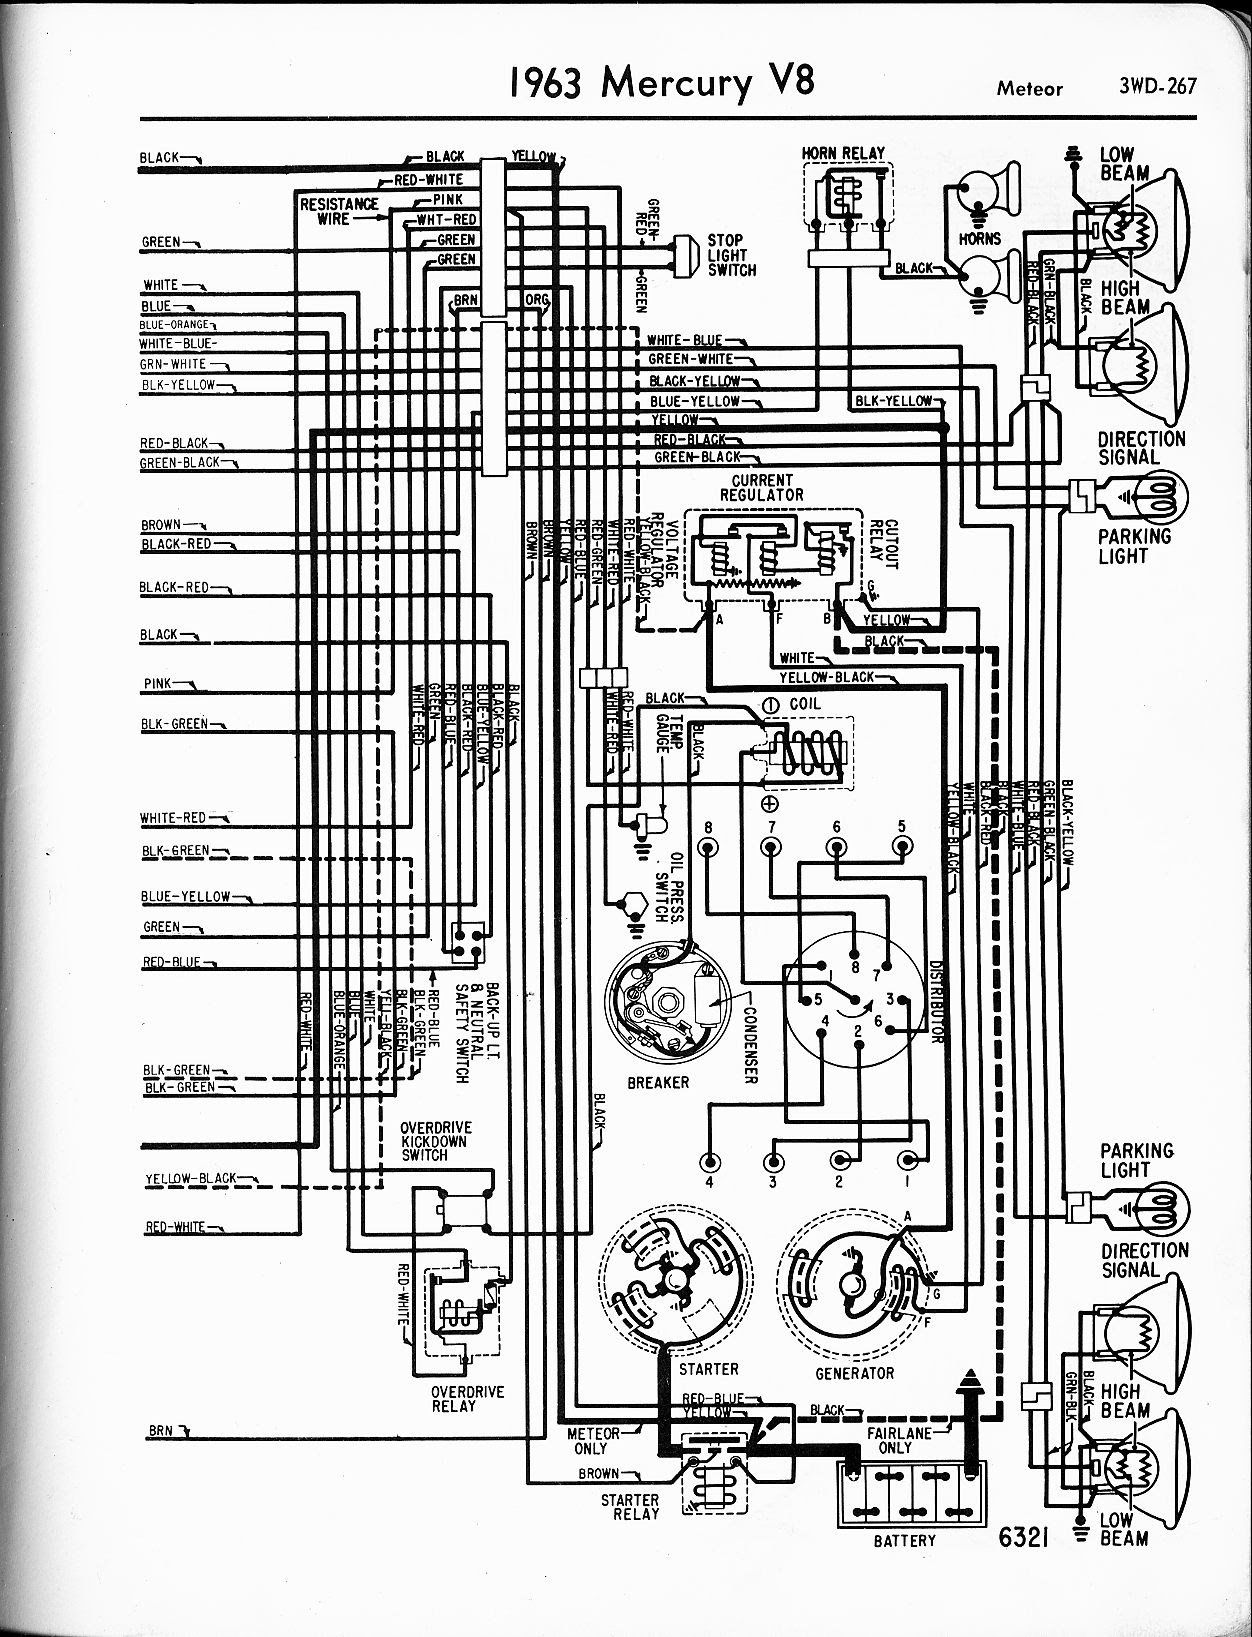 1962 chevy wiring harness diagram - wiring diagrams dry-metal -  dry-metal.alcuoredeldiabete.it  al cuore del diabete